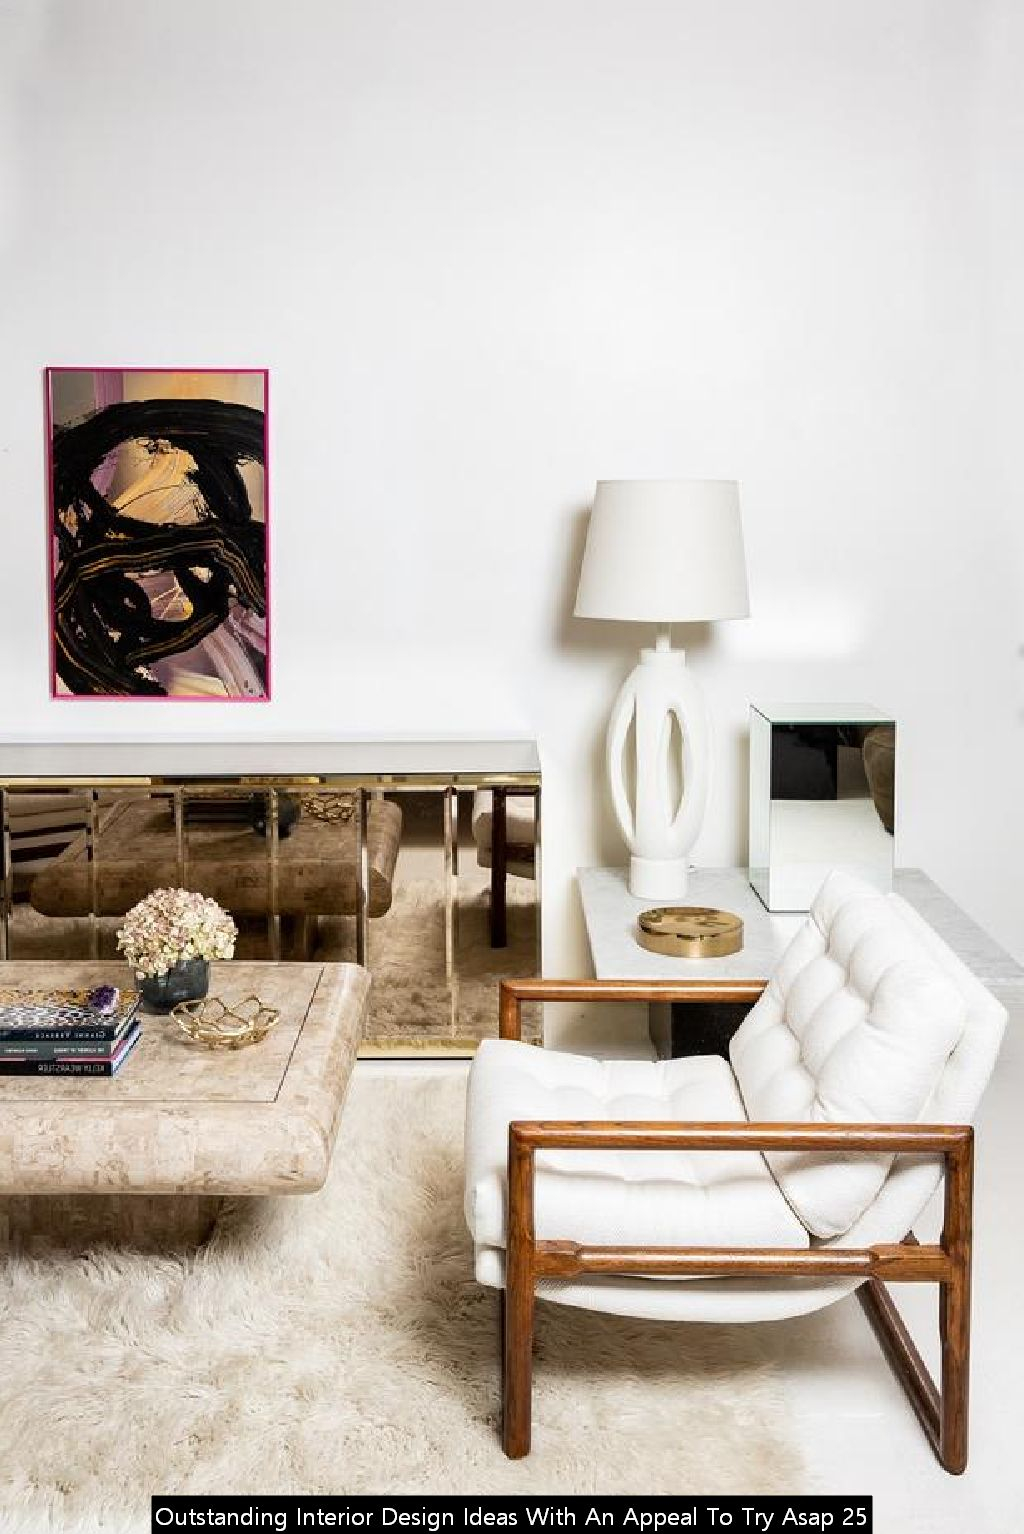 Outstanding Interior Design Ideas With An Appeal To Try Asap 25